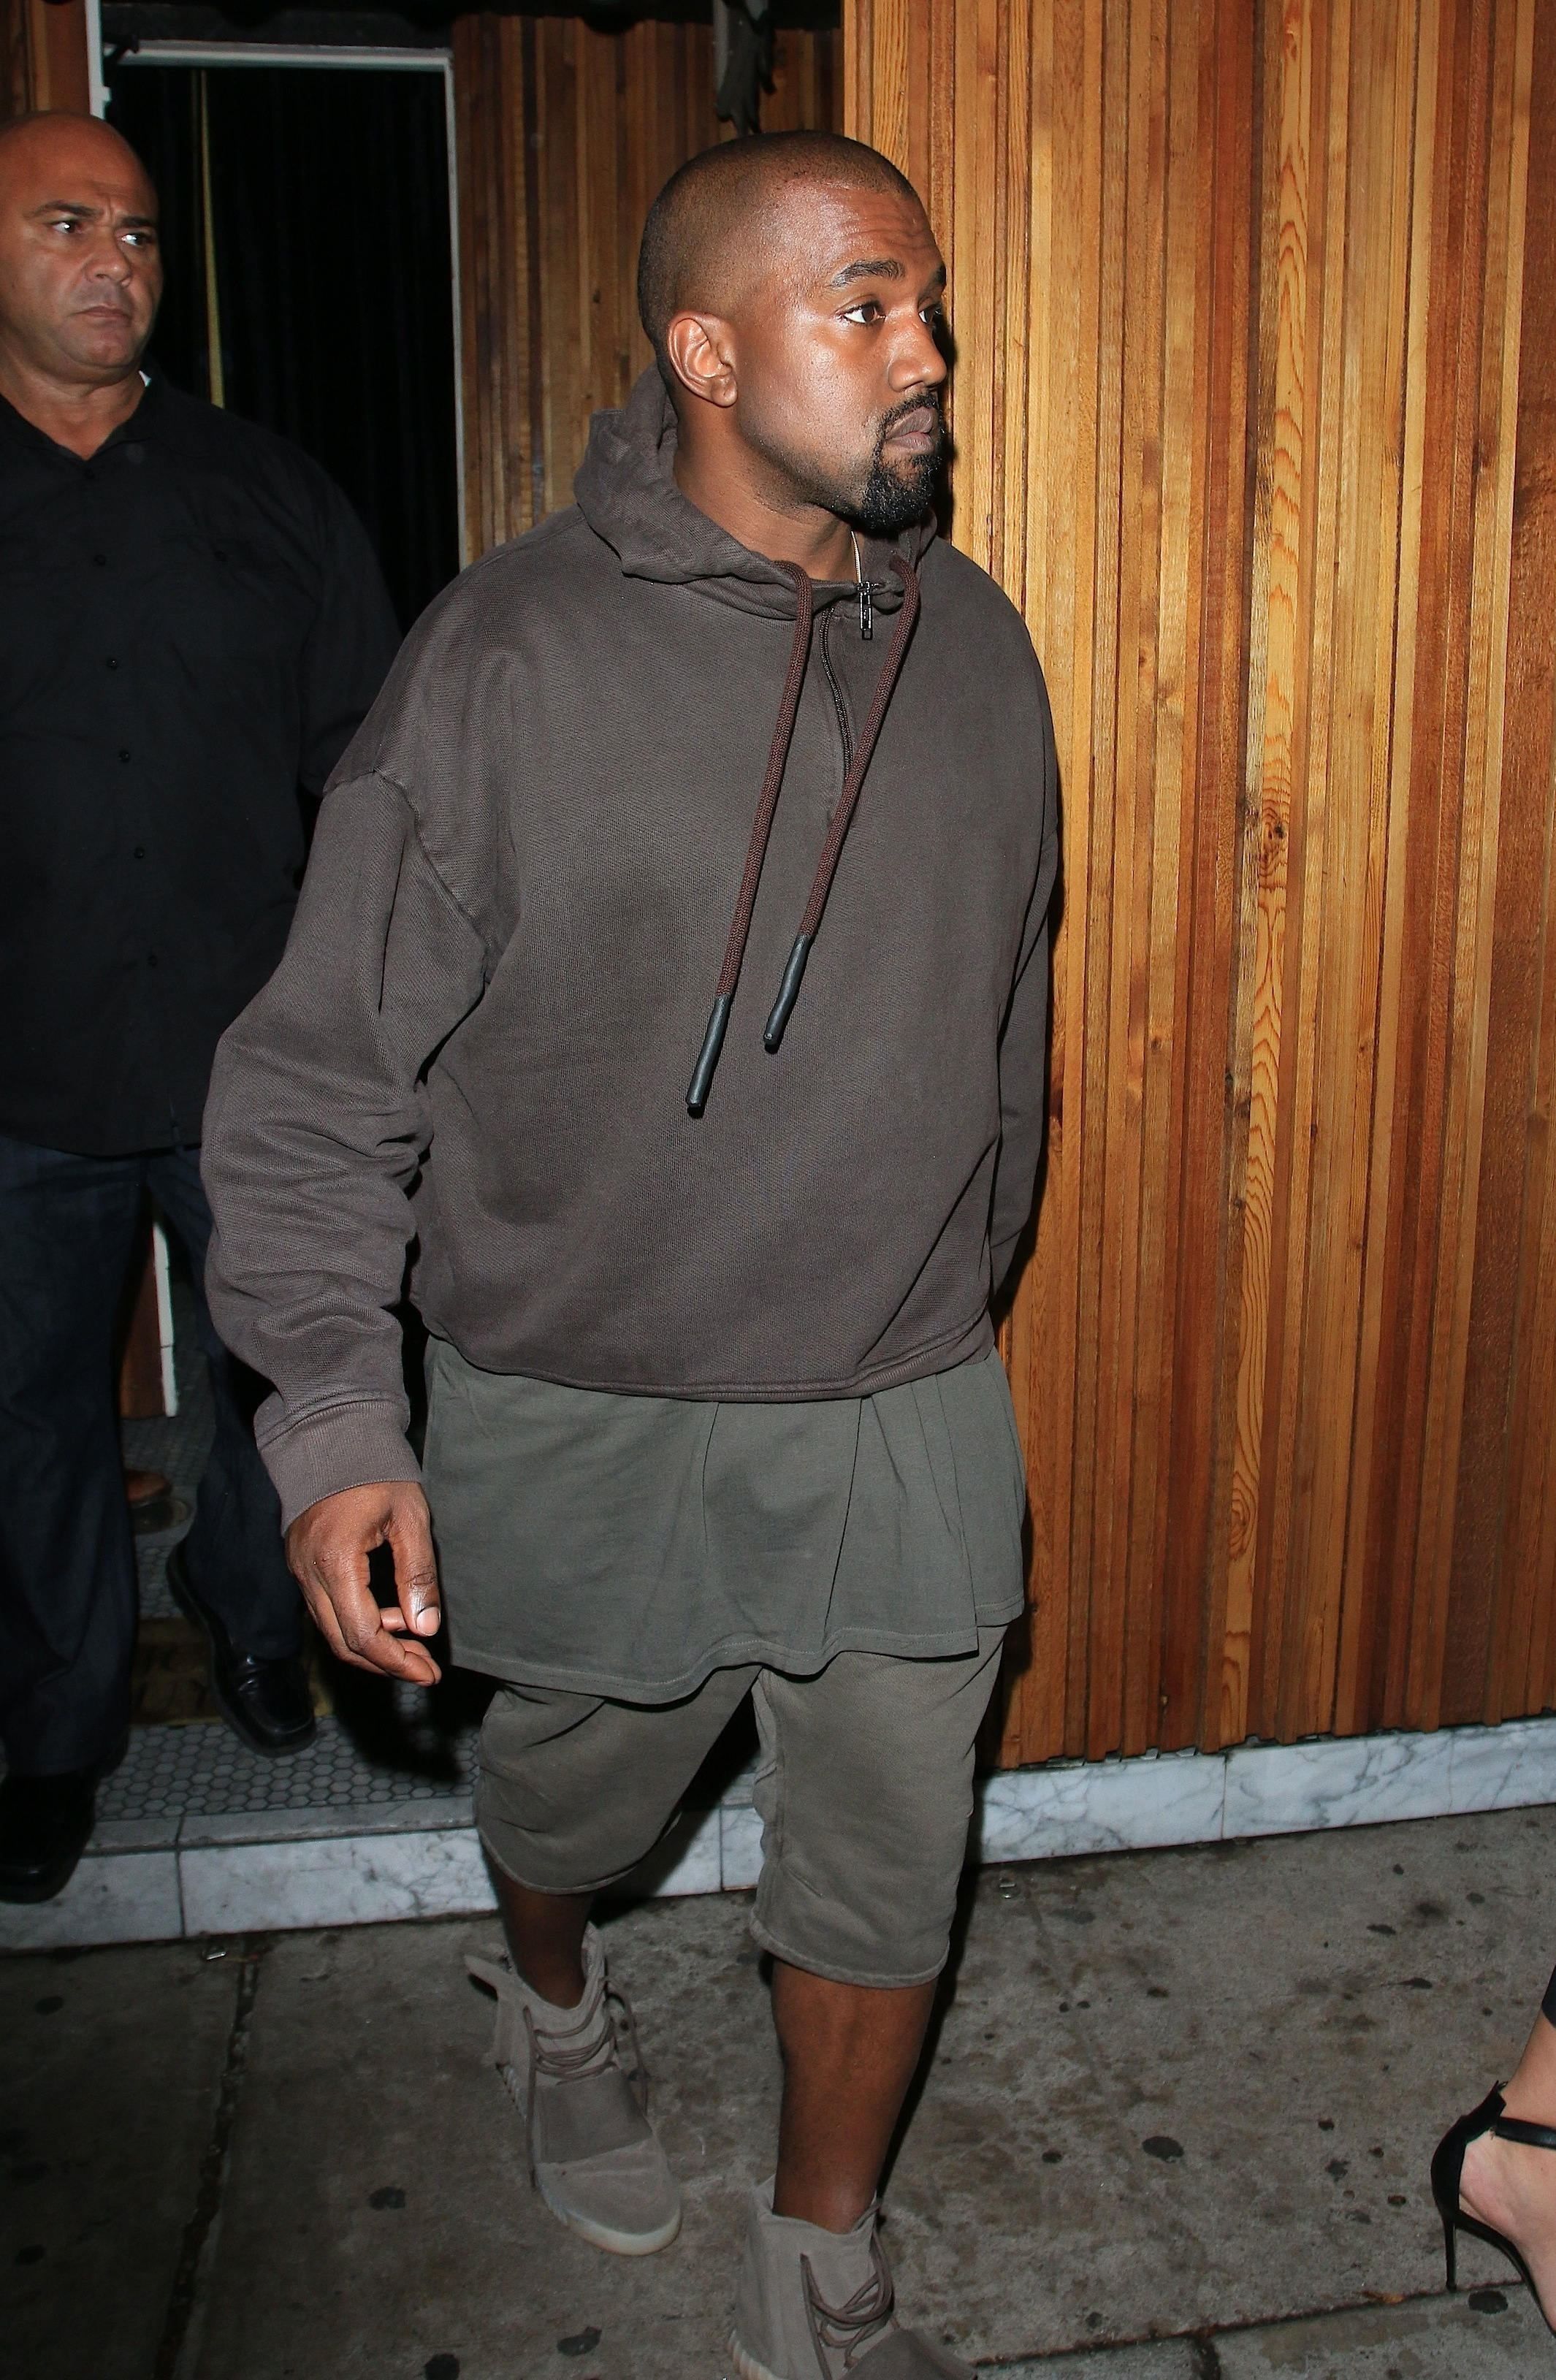 A heavily pregnant Kim Kardashian and Kanye West attend Kendall Jenner's Birthday Celebration at The Nice Guy in West Hollywood Featuring: Kanye West Where: Los Angeles, California, United States When: 03 Nov 2015 Credit: Winston Burris/WENN.com